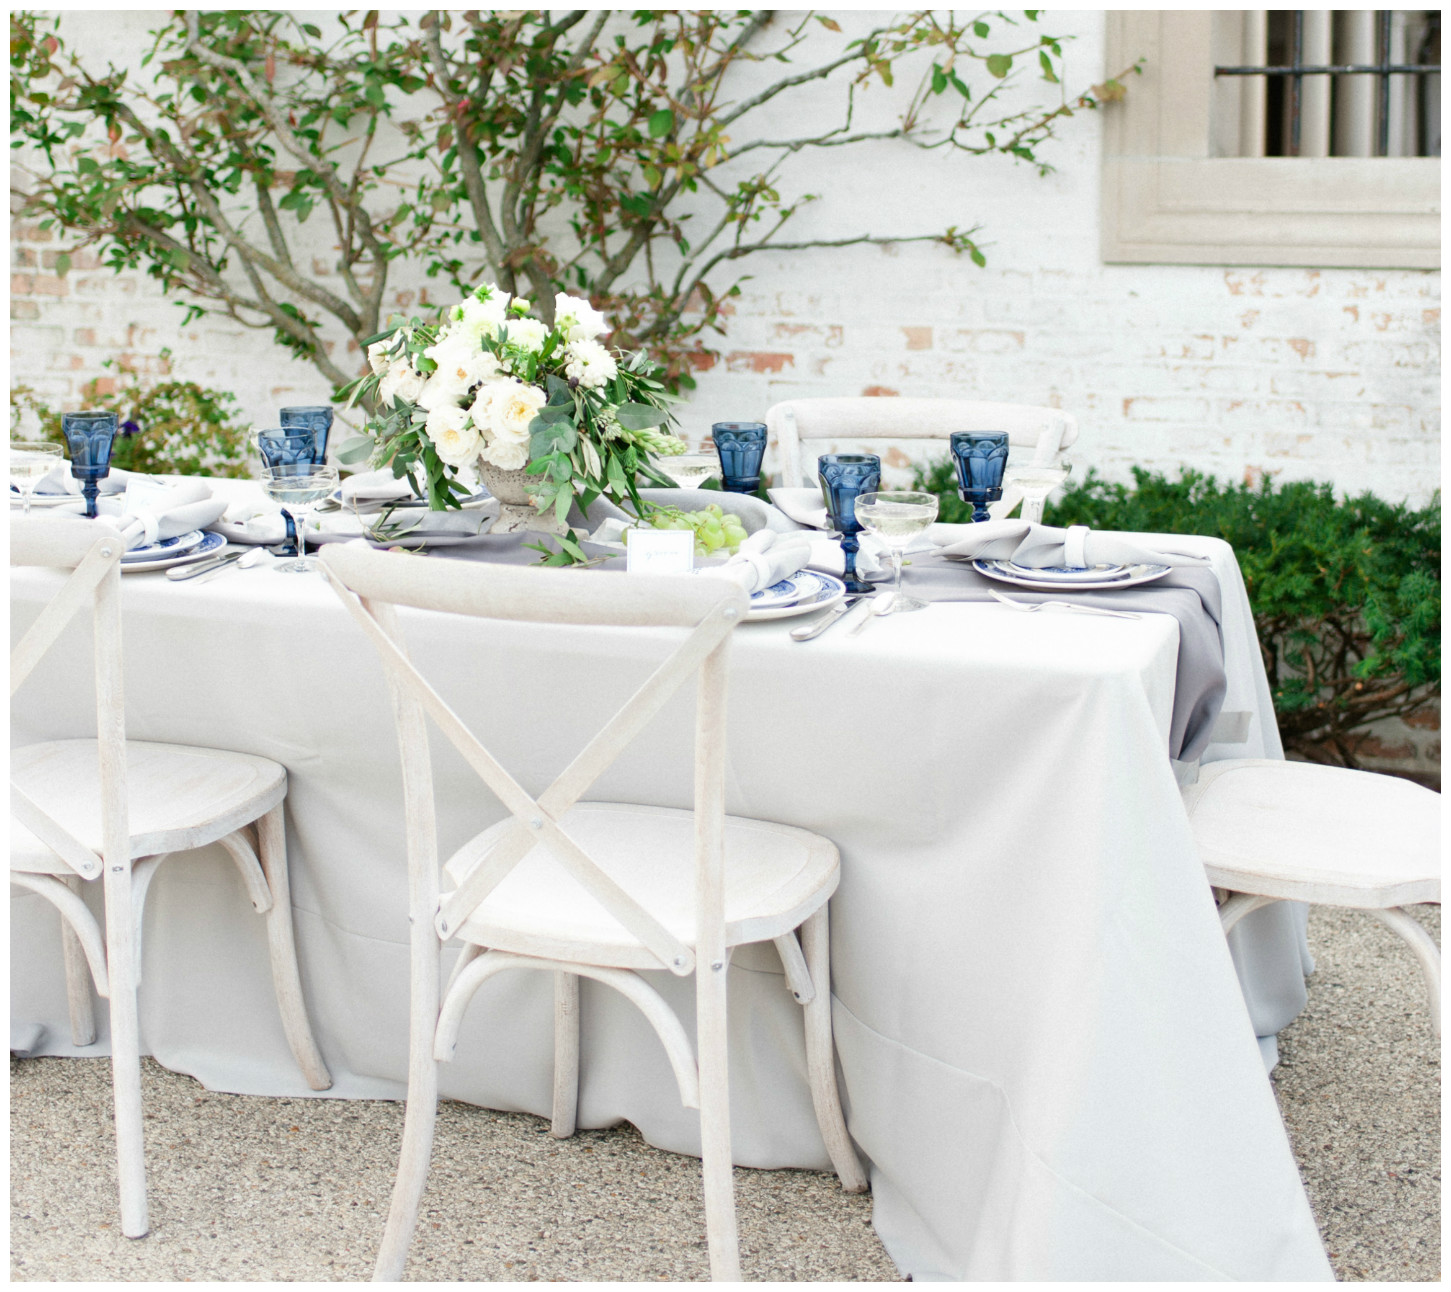 Silver Duet Table Linen with Indigo Glassware Wedding Decor | BBJ Linen